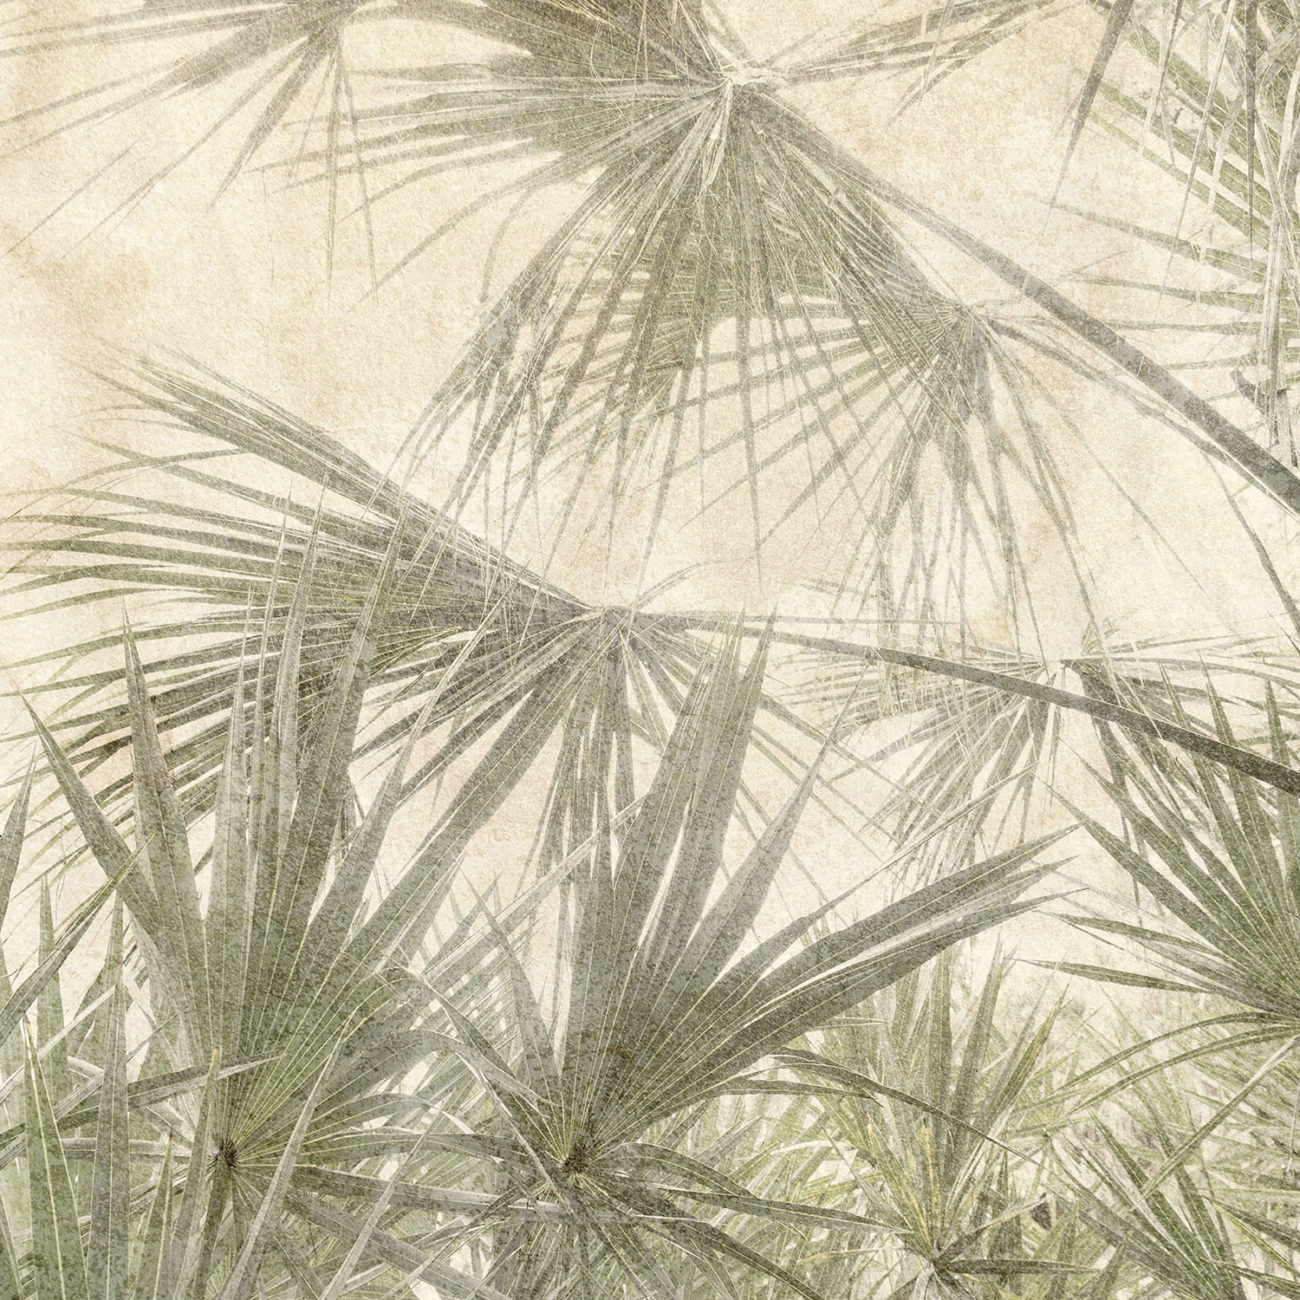 Sabal palm leaves 1, 2019